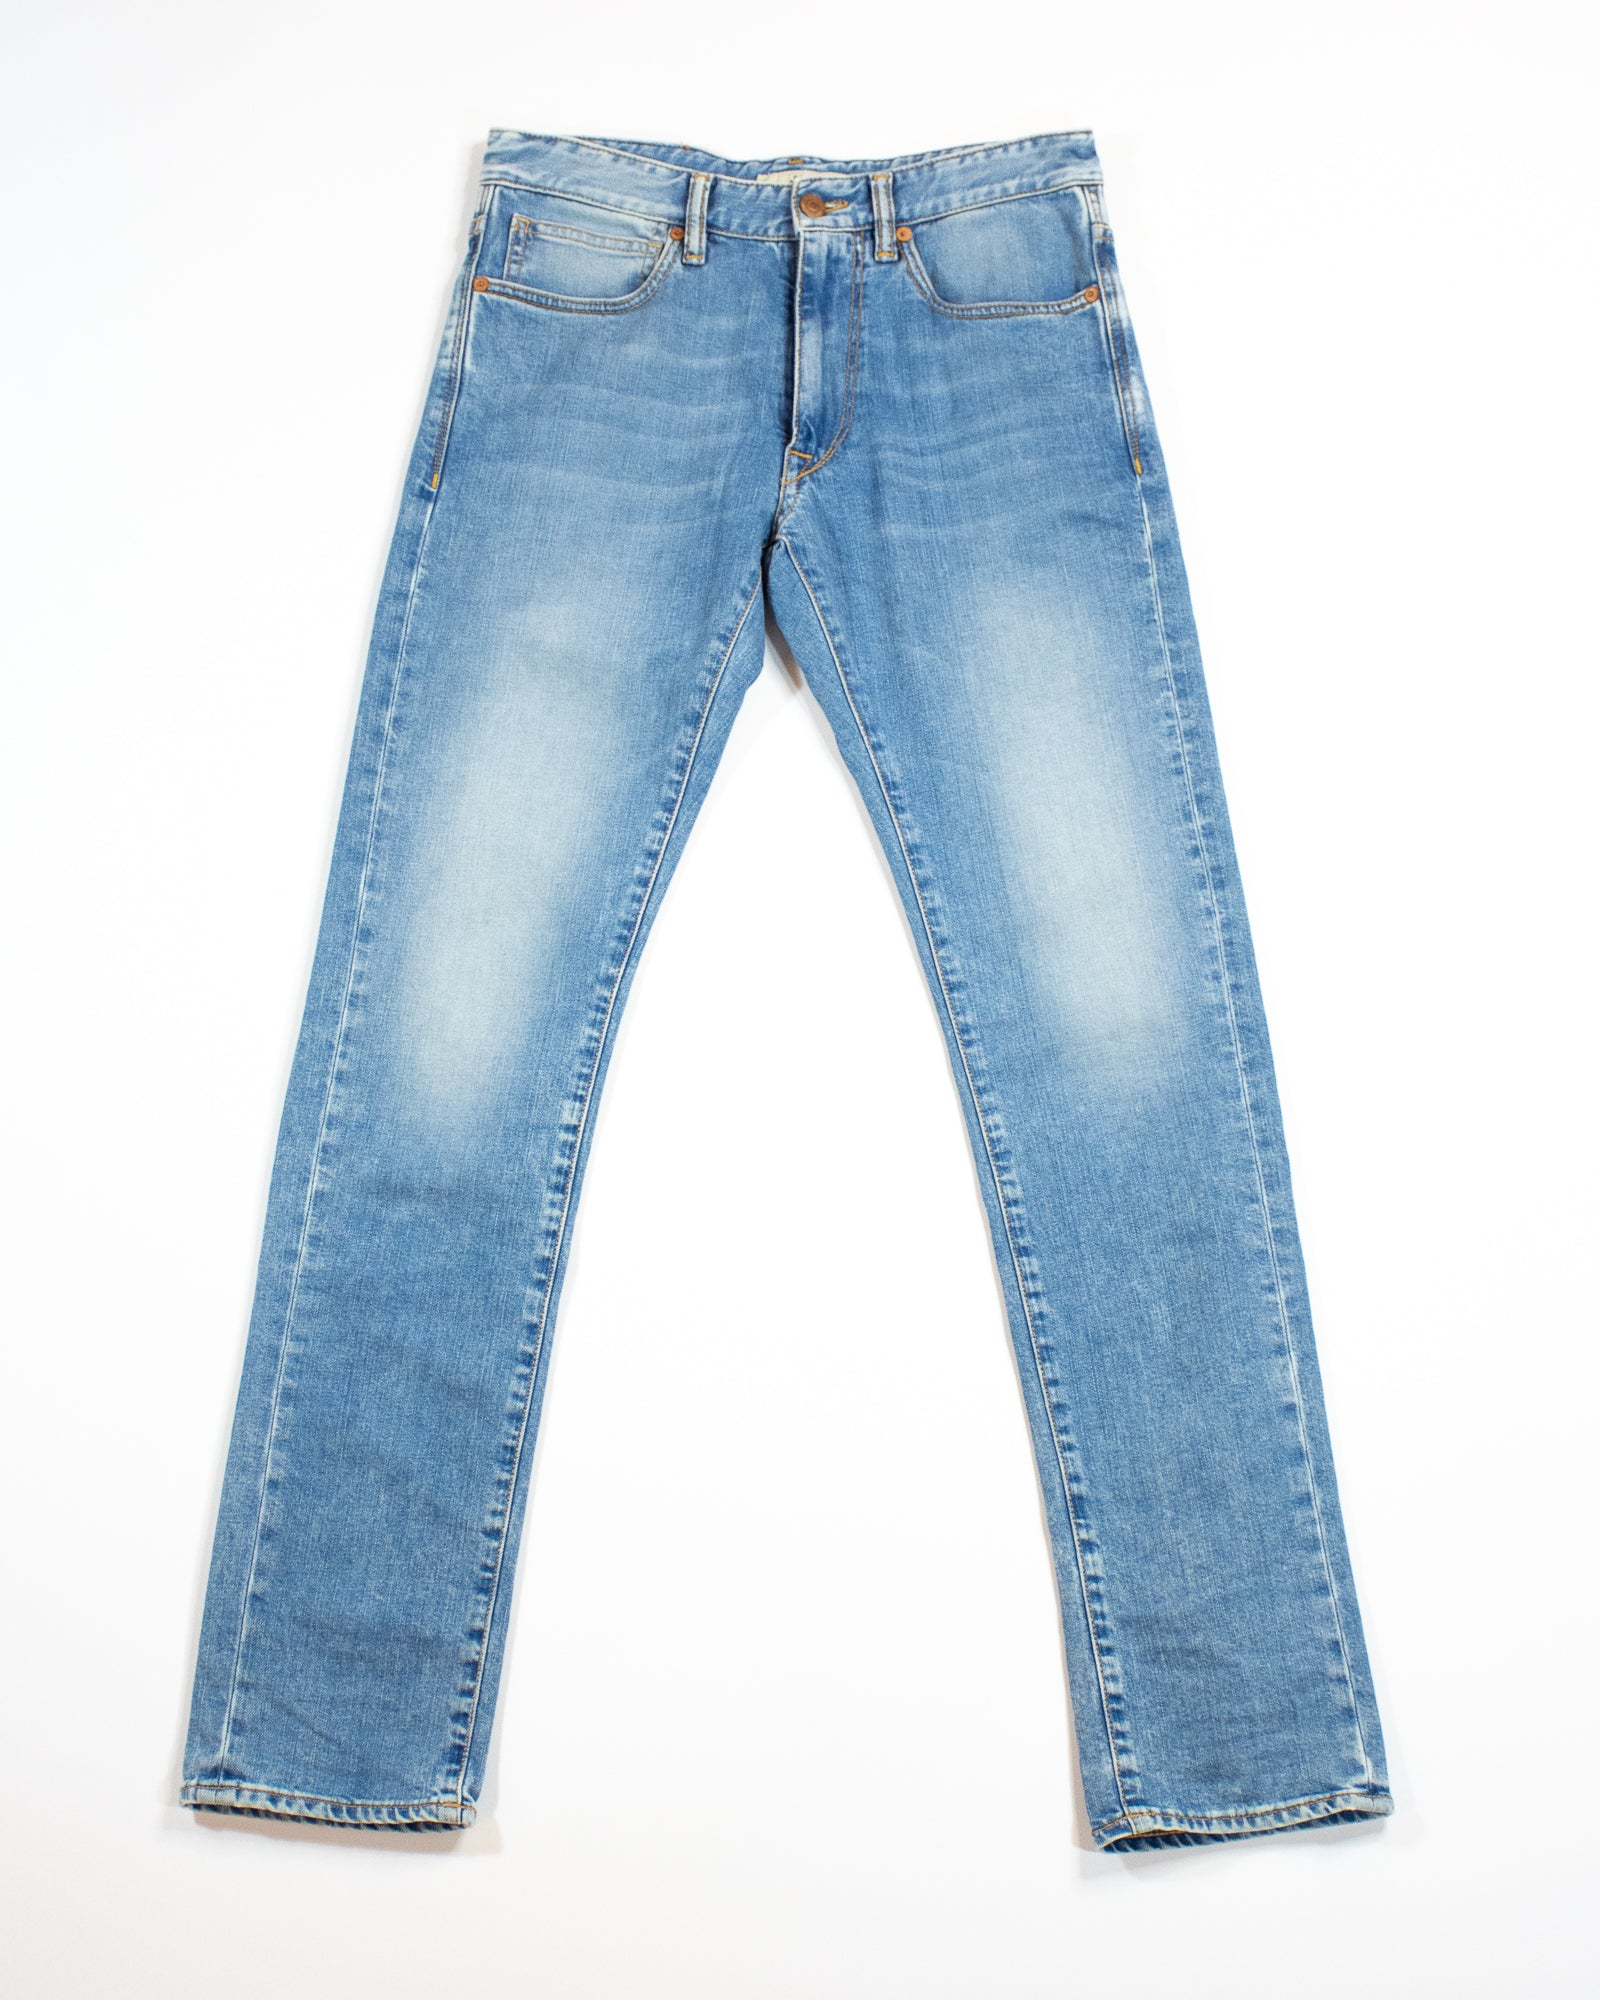 SLOWEAR 5 Pocket Jean